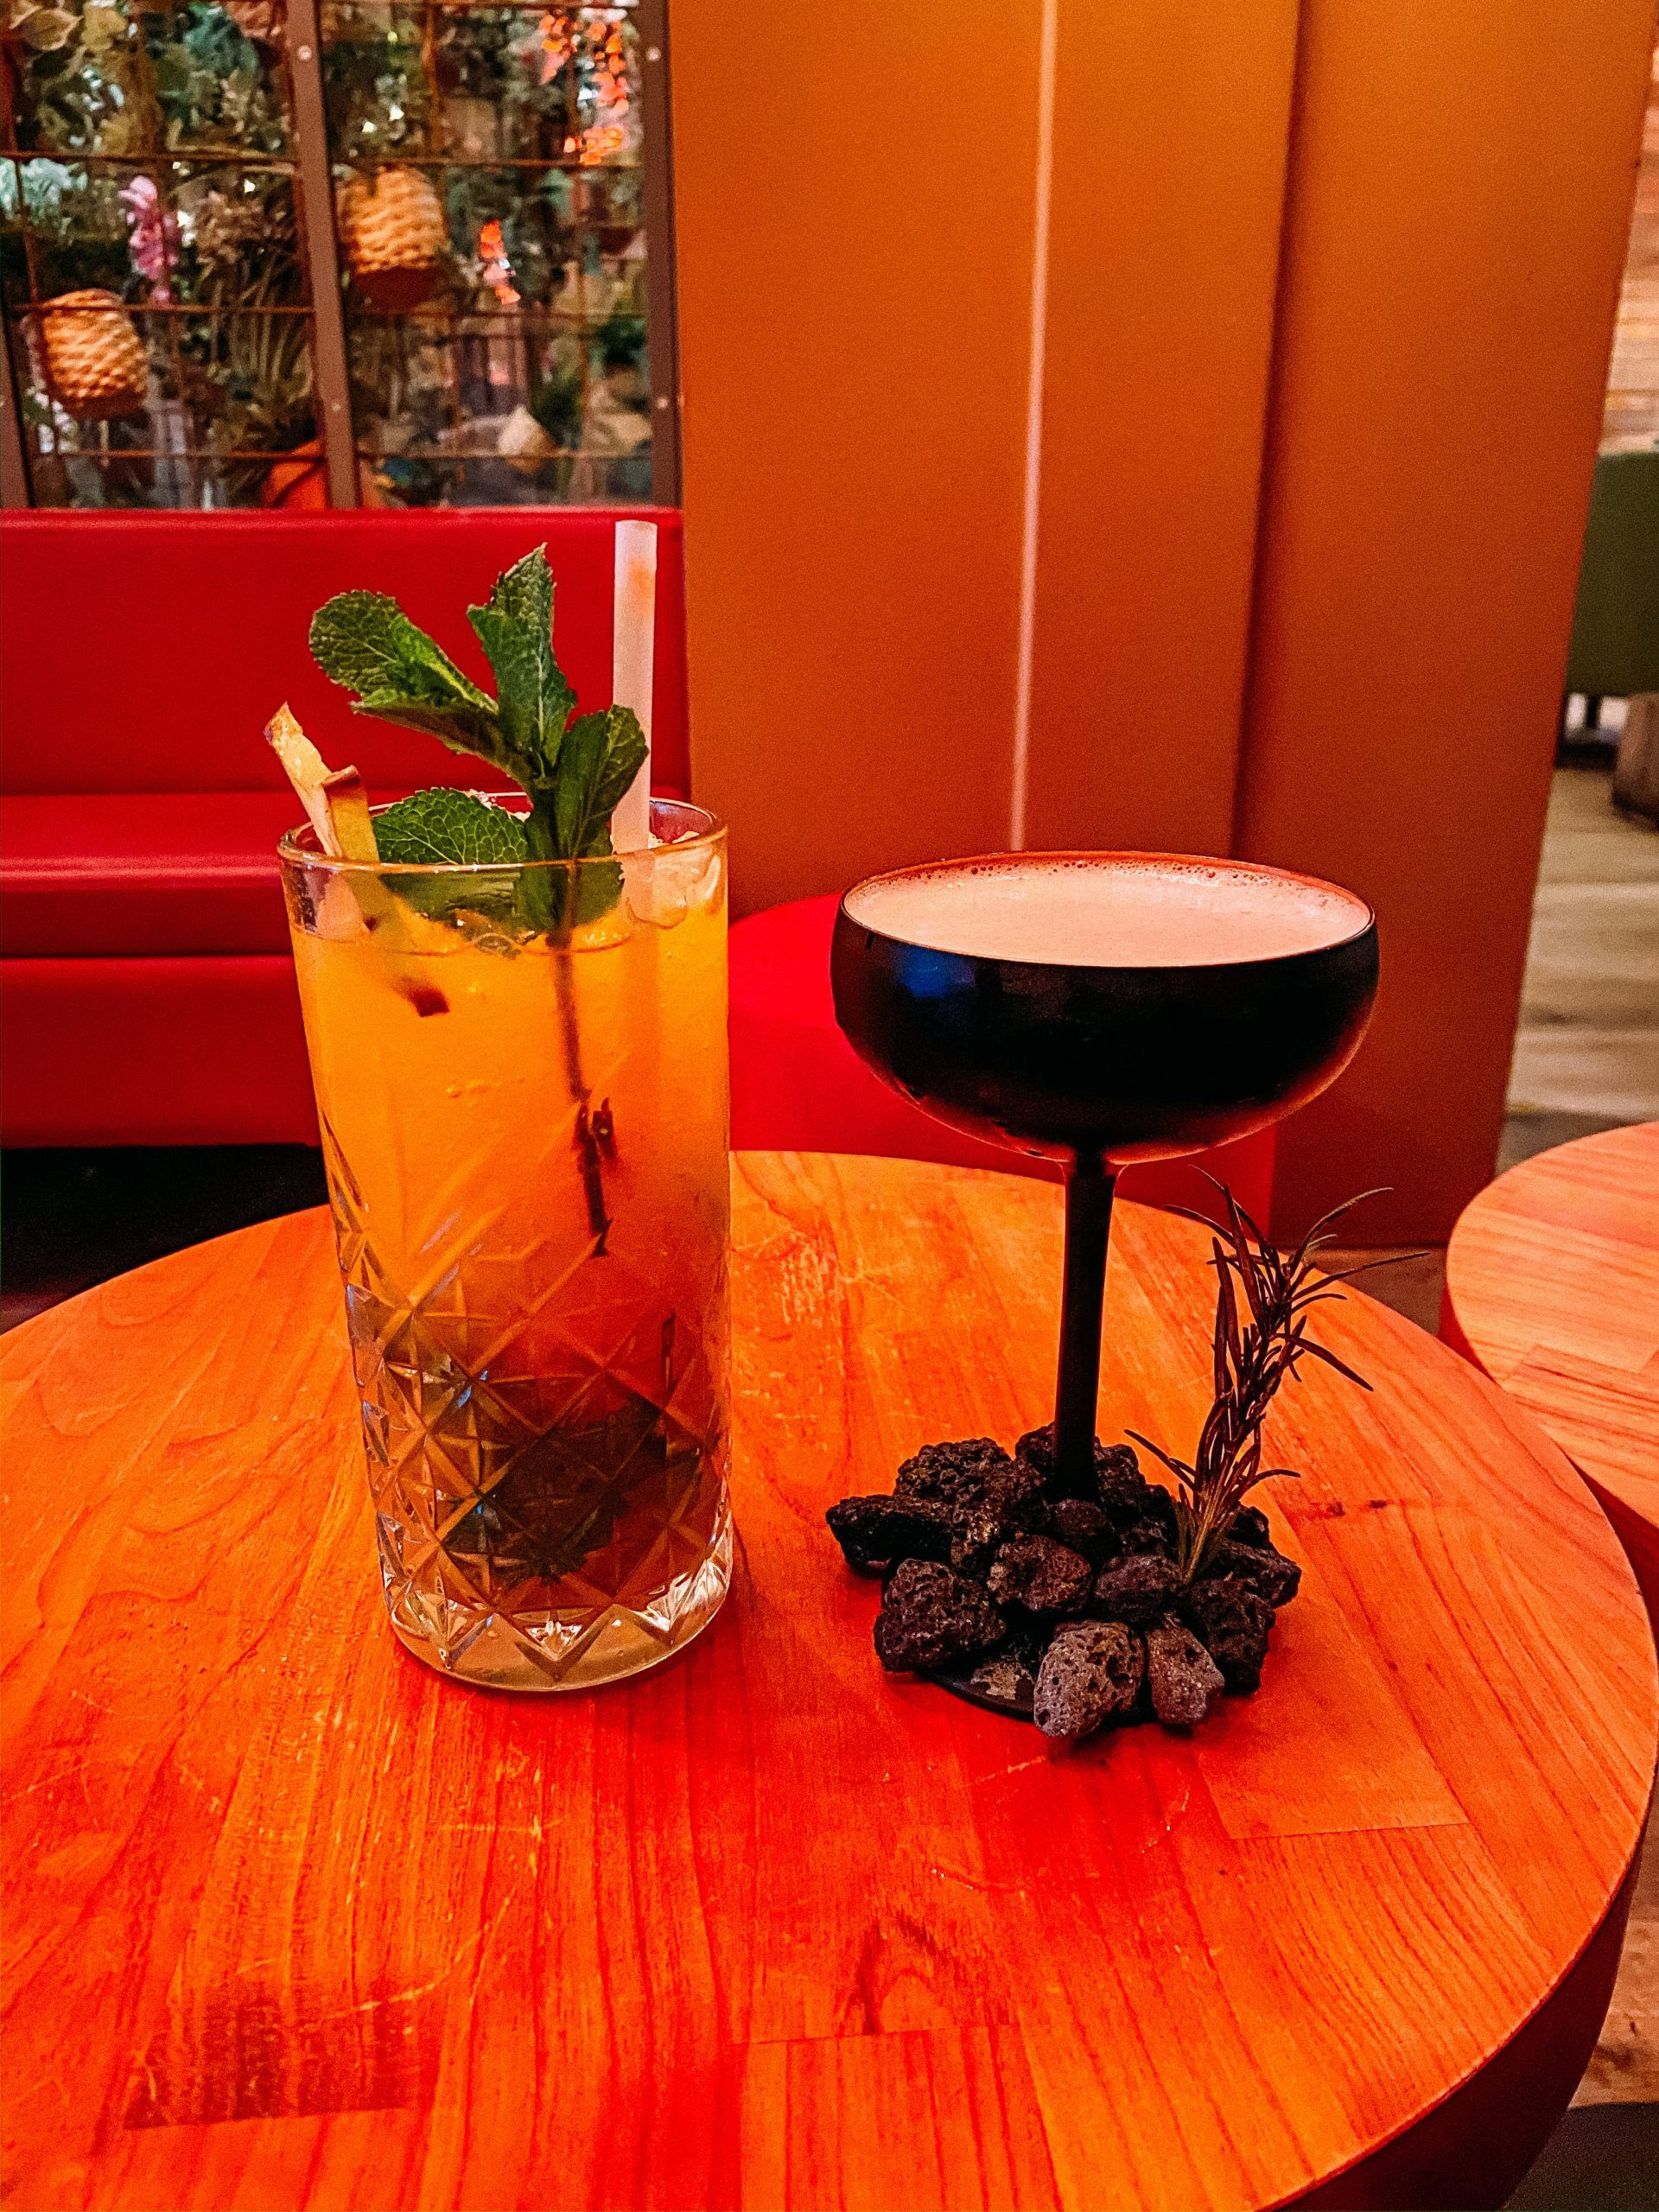 Cocktails at social sushi in Iceland